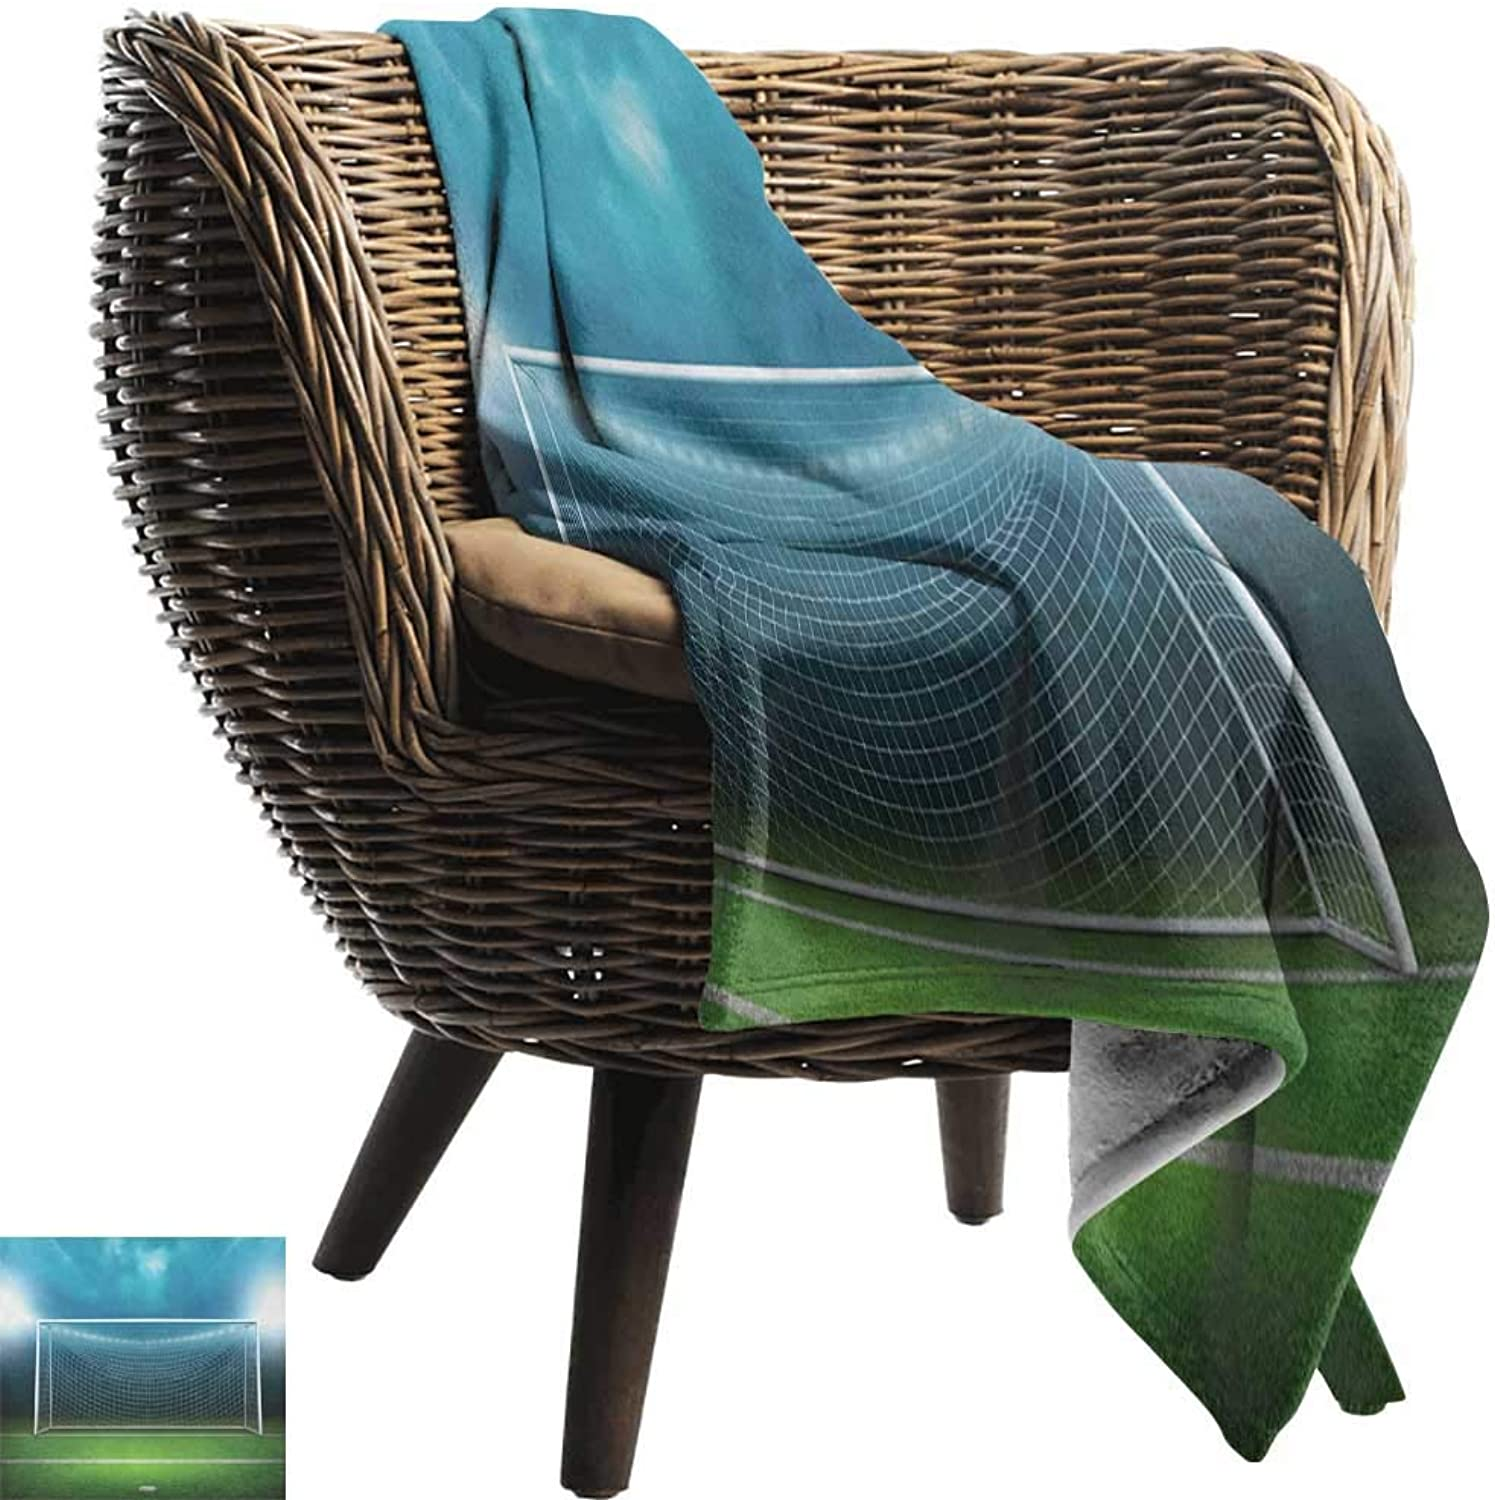 Weighted Blanket for Kids,Soccer,Soccer Goal Post Sports Area Winner Loser Line Floodlit Best Team Finals Game Theme, Green bluee,Weighted Blanket for Adults Kids, Better Deeper Sleep 50 x70